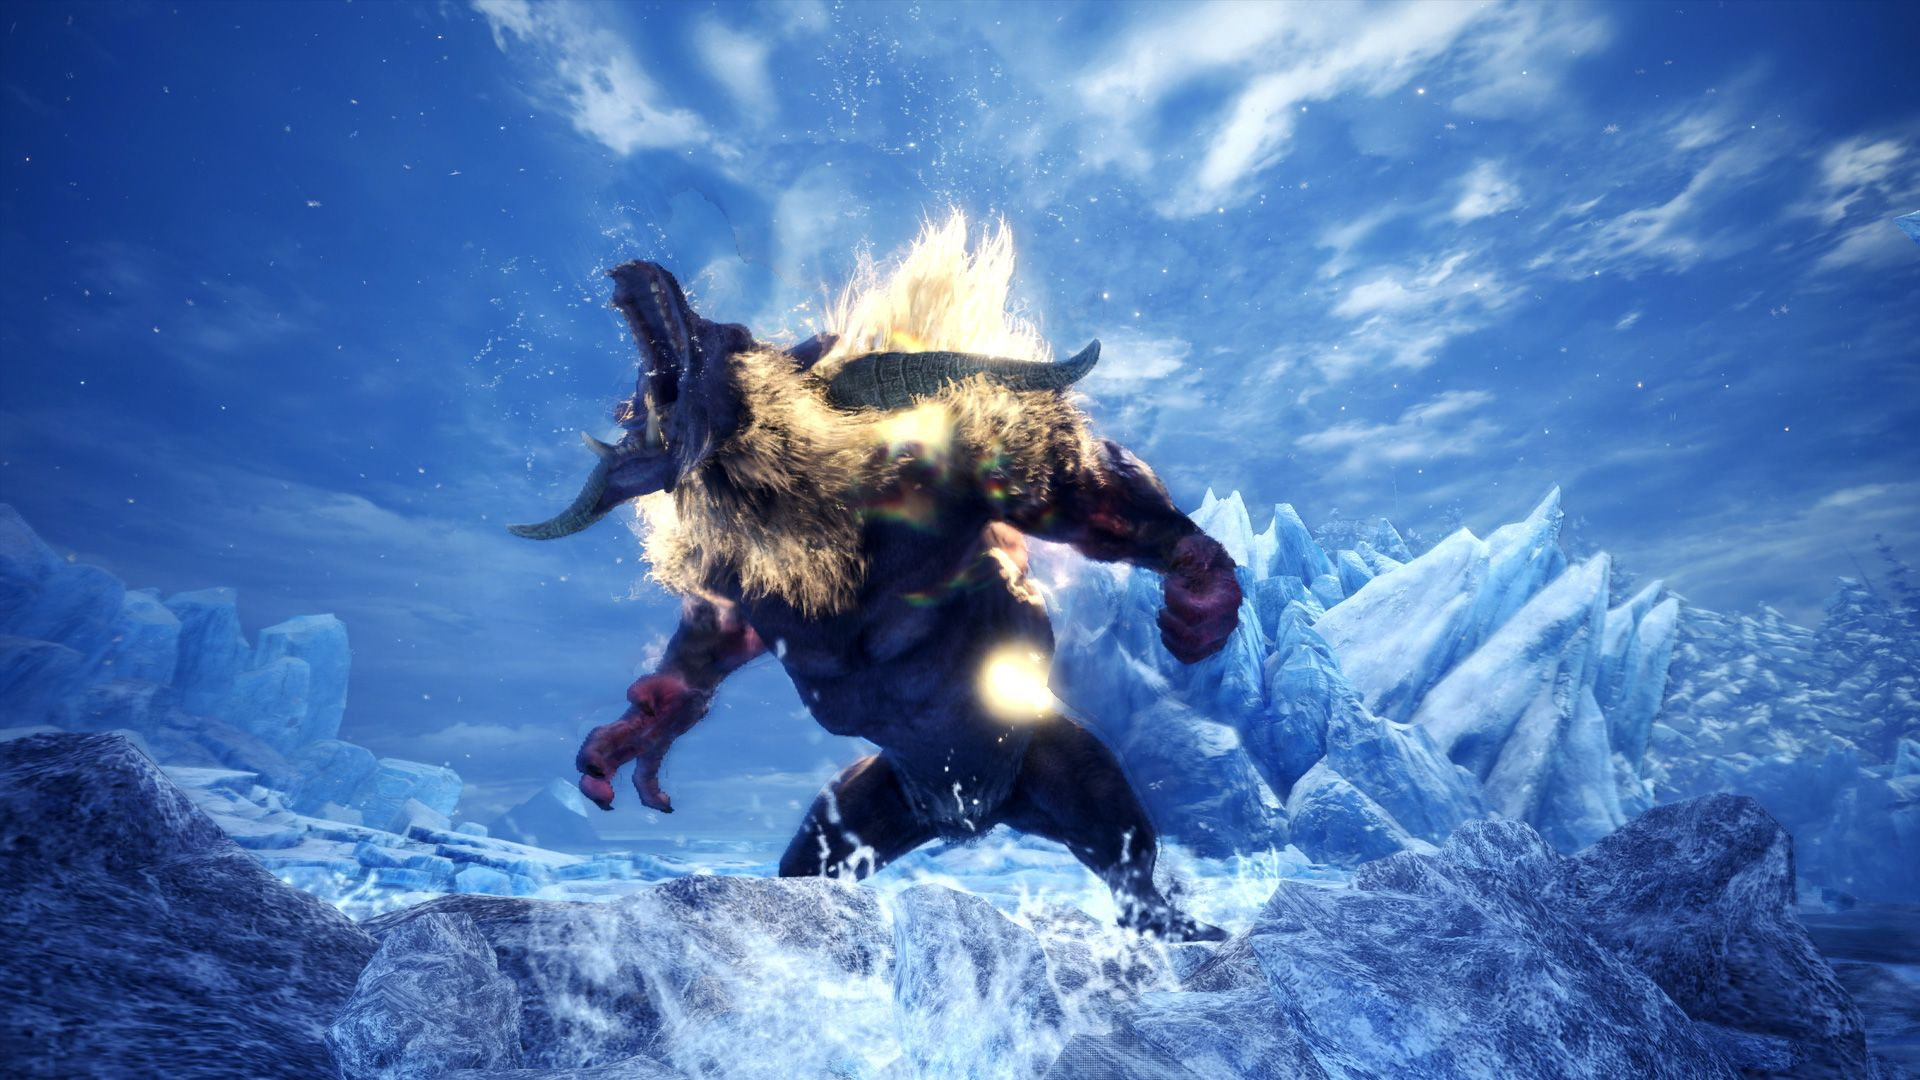 Monster Hunter World Iceborne - Furious Rajang